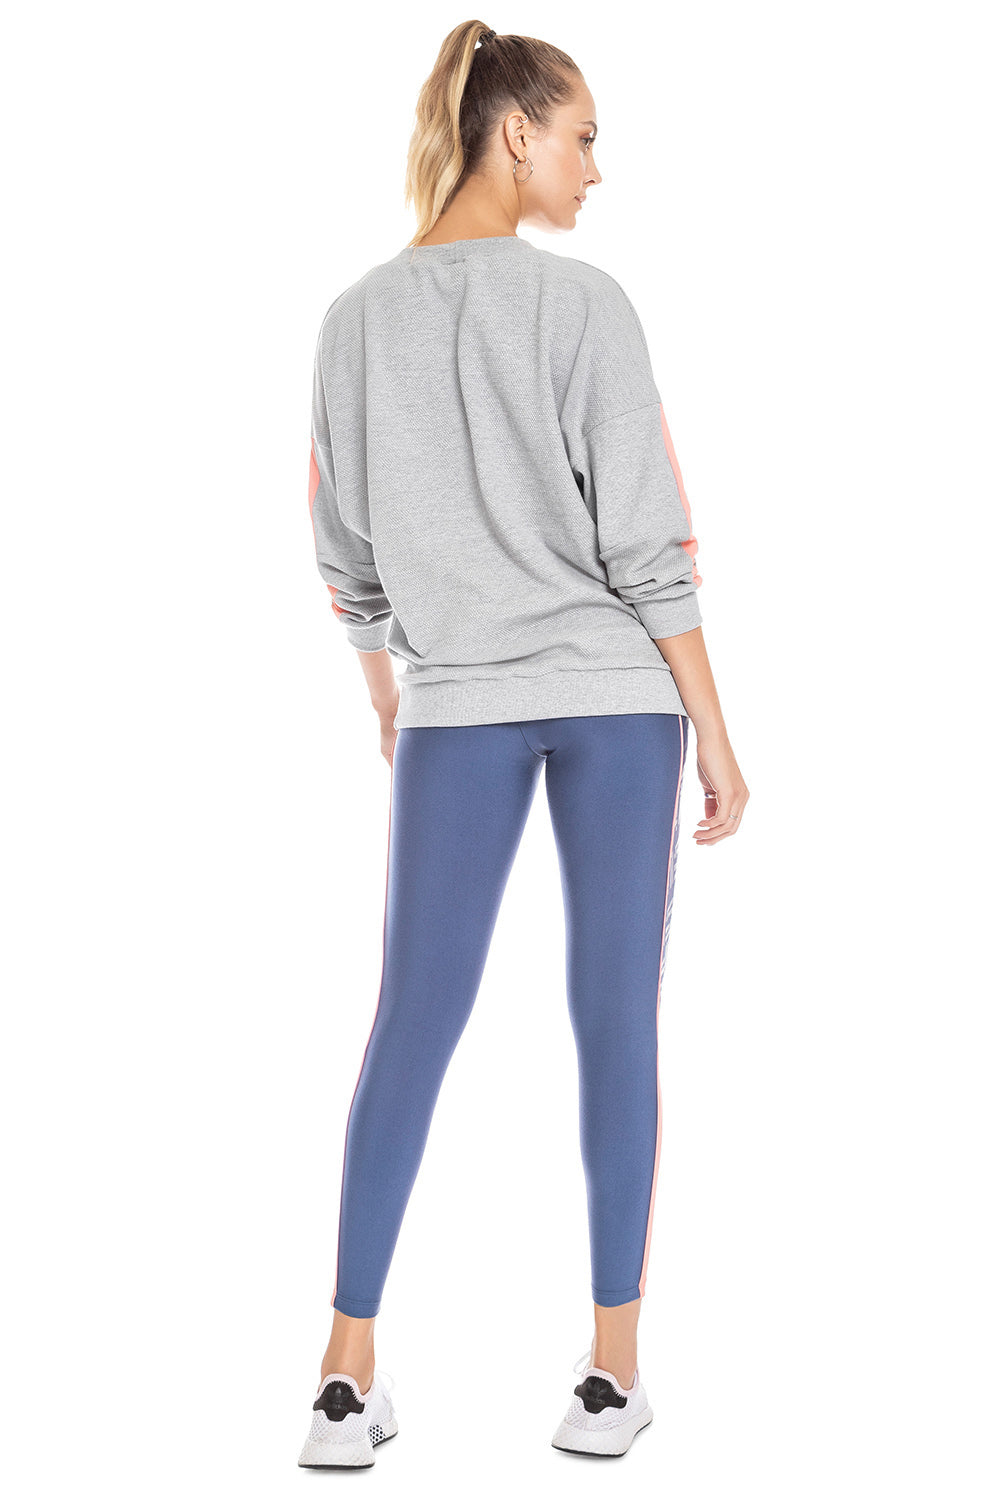 Ultra Evolution Legging 2